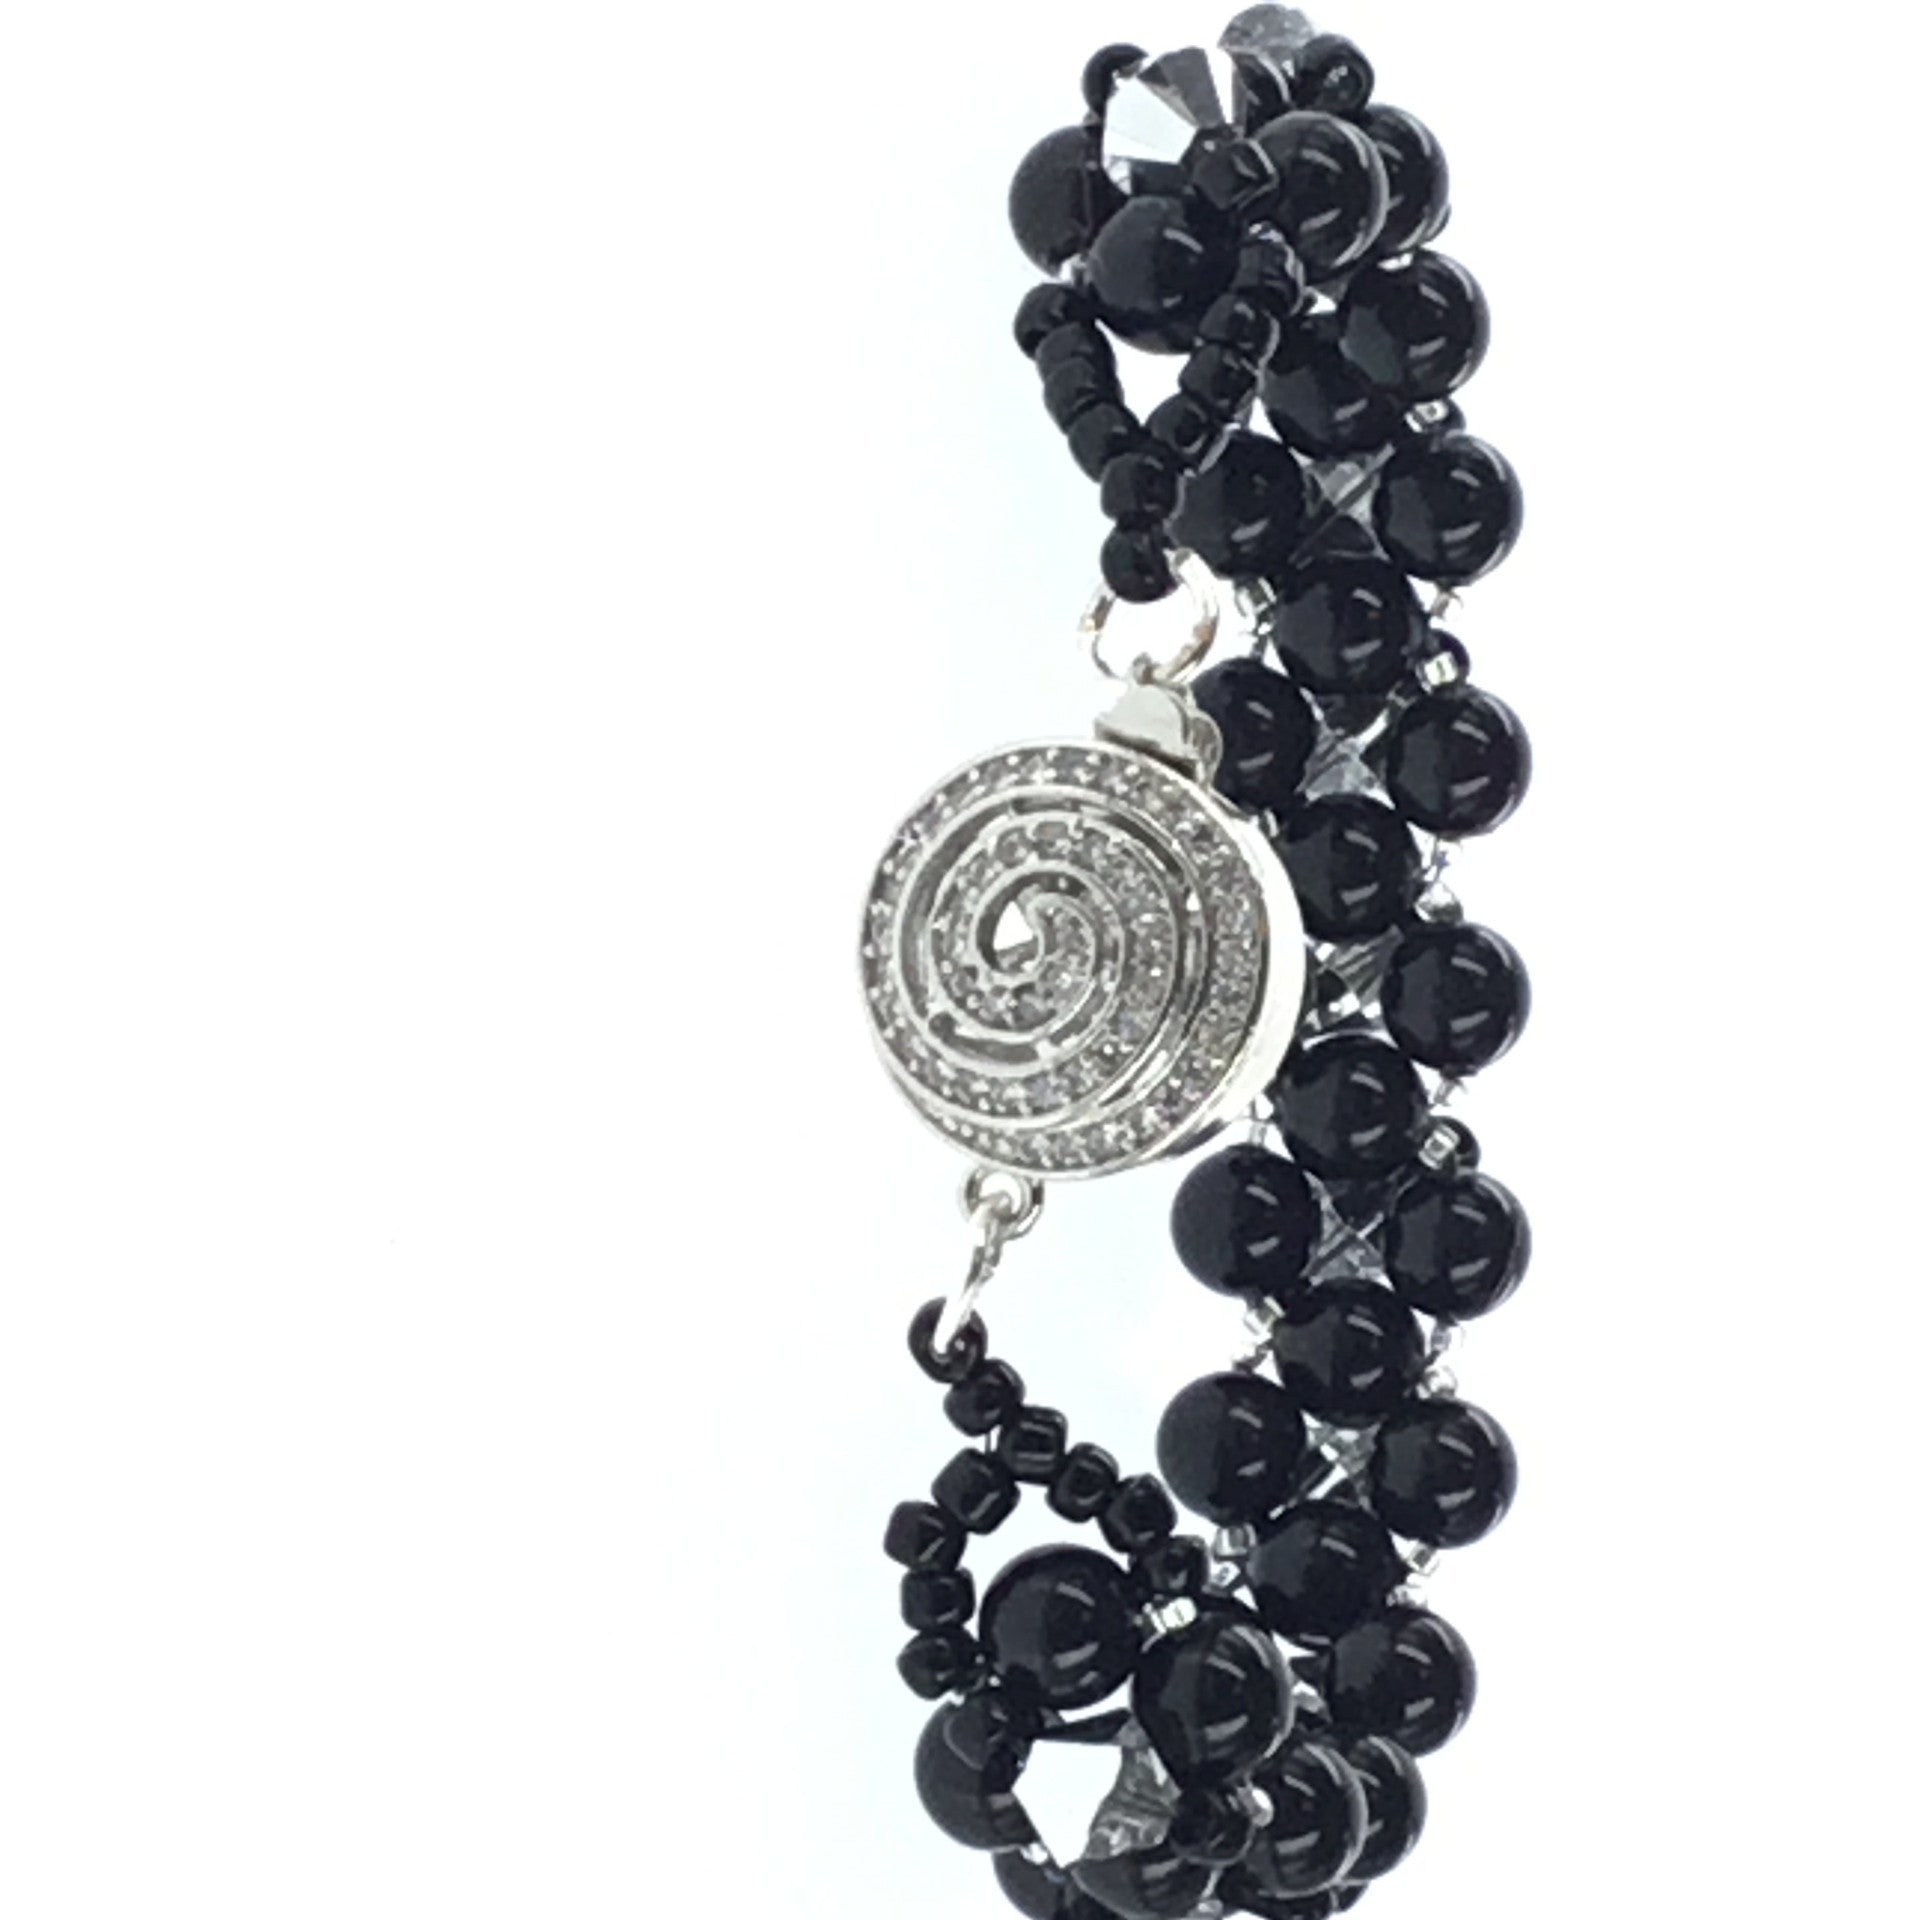 Swarovski Black Pearl and Crystal Bracelet - Real Chic Boutique  - 2